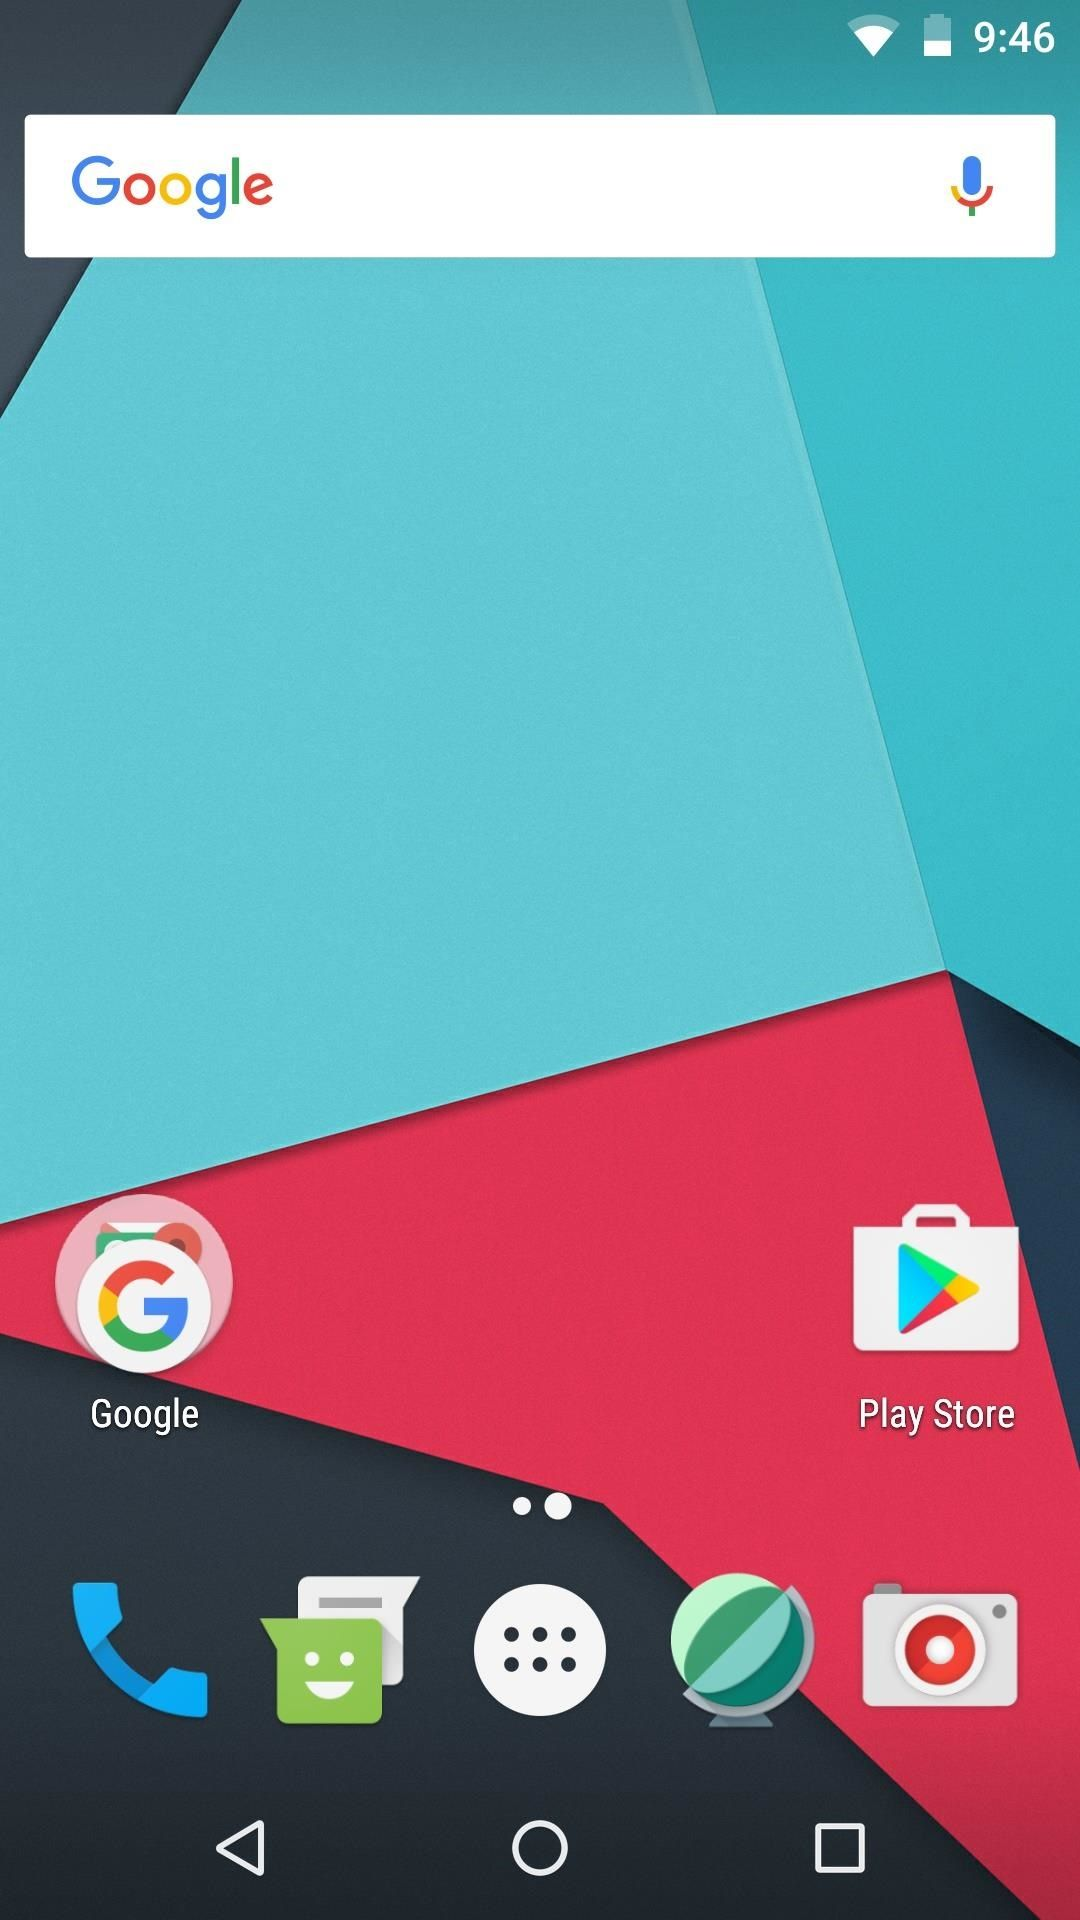 How To Get Search Bar On Top Of Screen